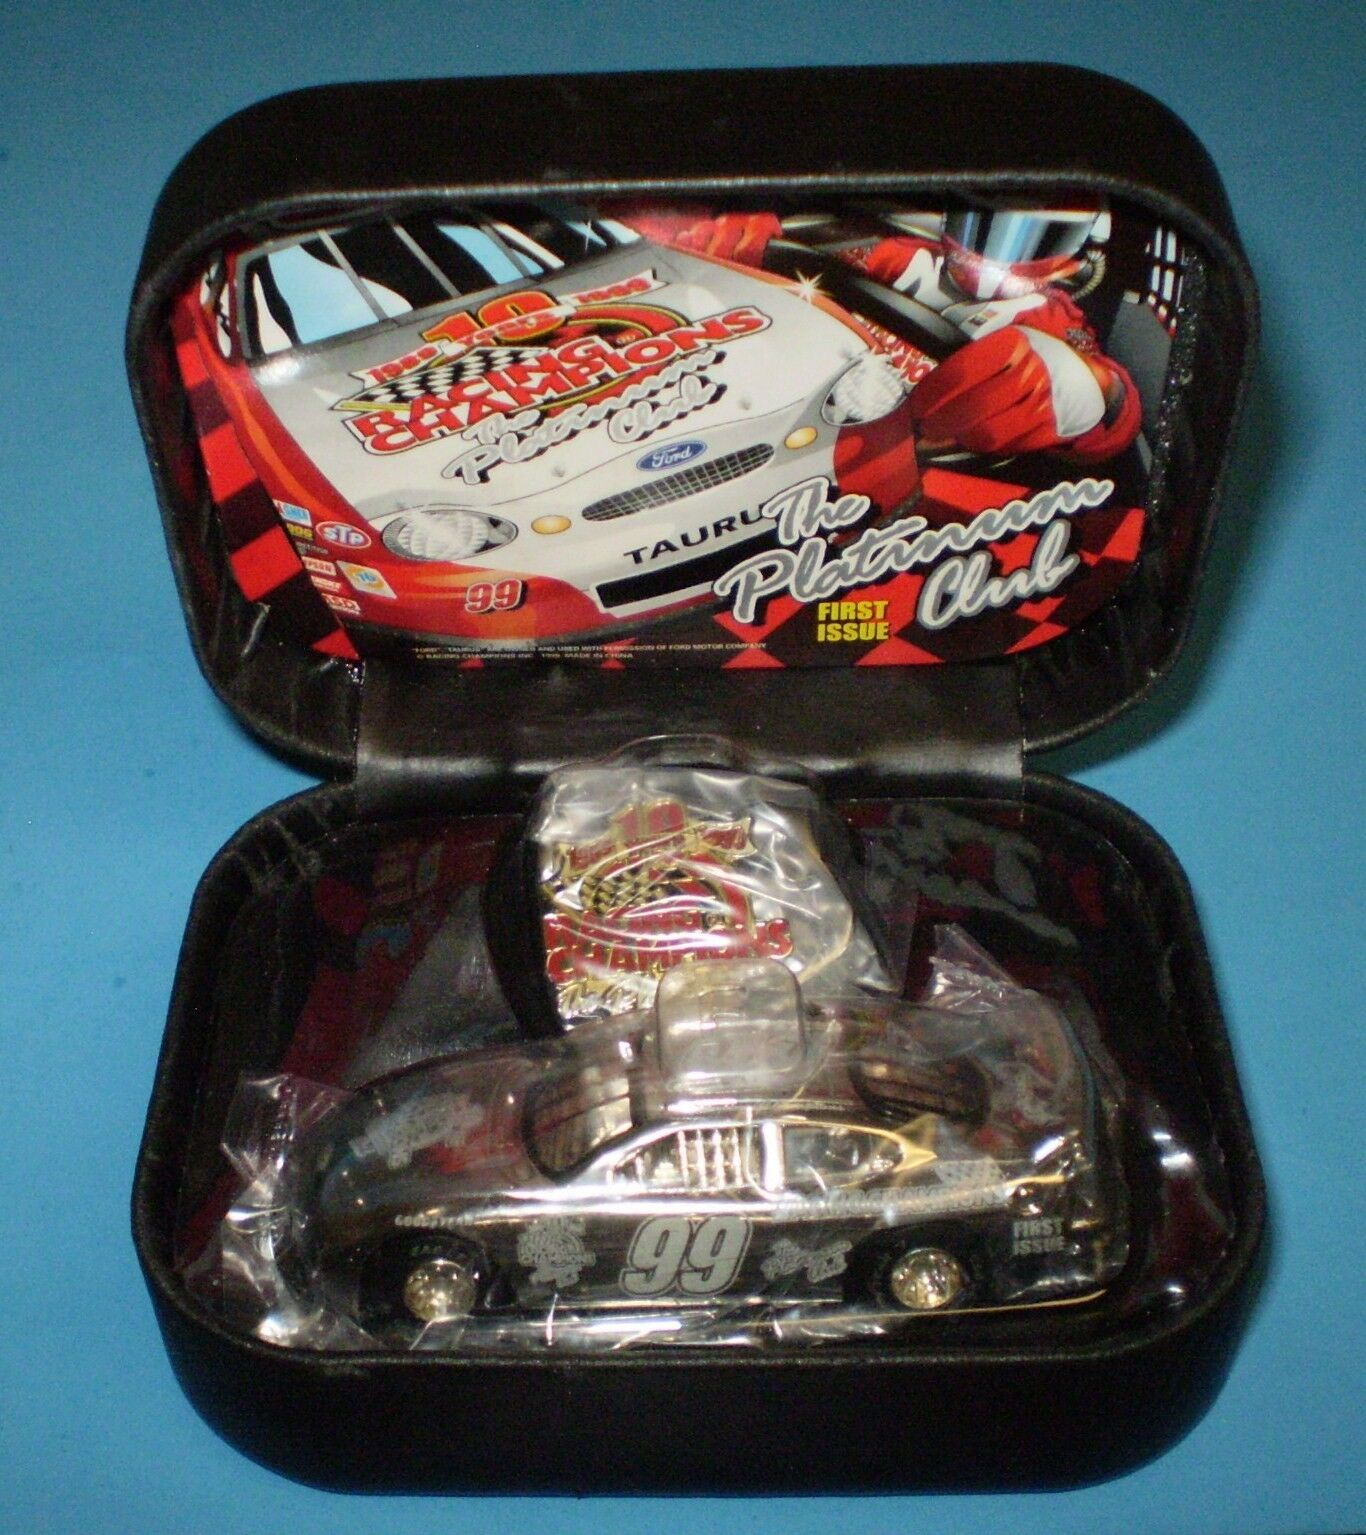 RACING CHAMPIONS, THE PLATINUM CLUB, FIRST ISSUE. 1 64, CAR.-PIN, NEW IN BOX